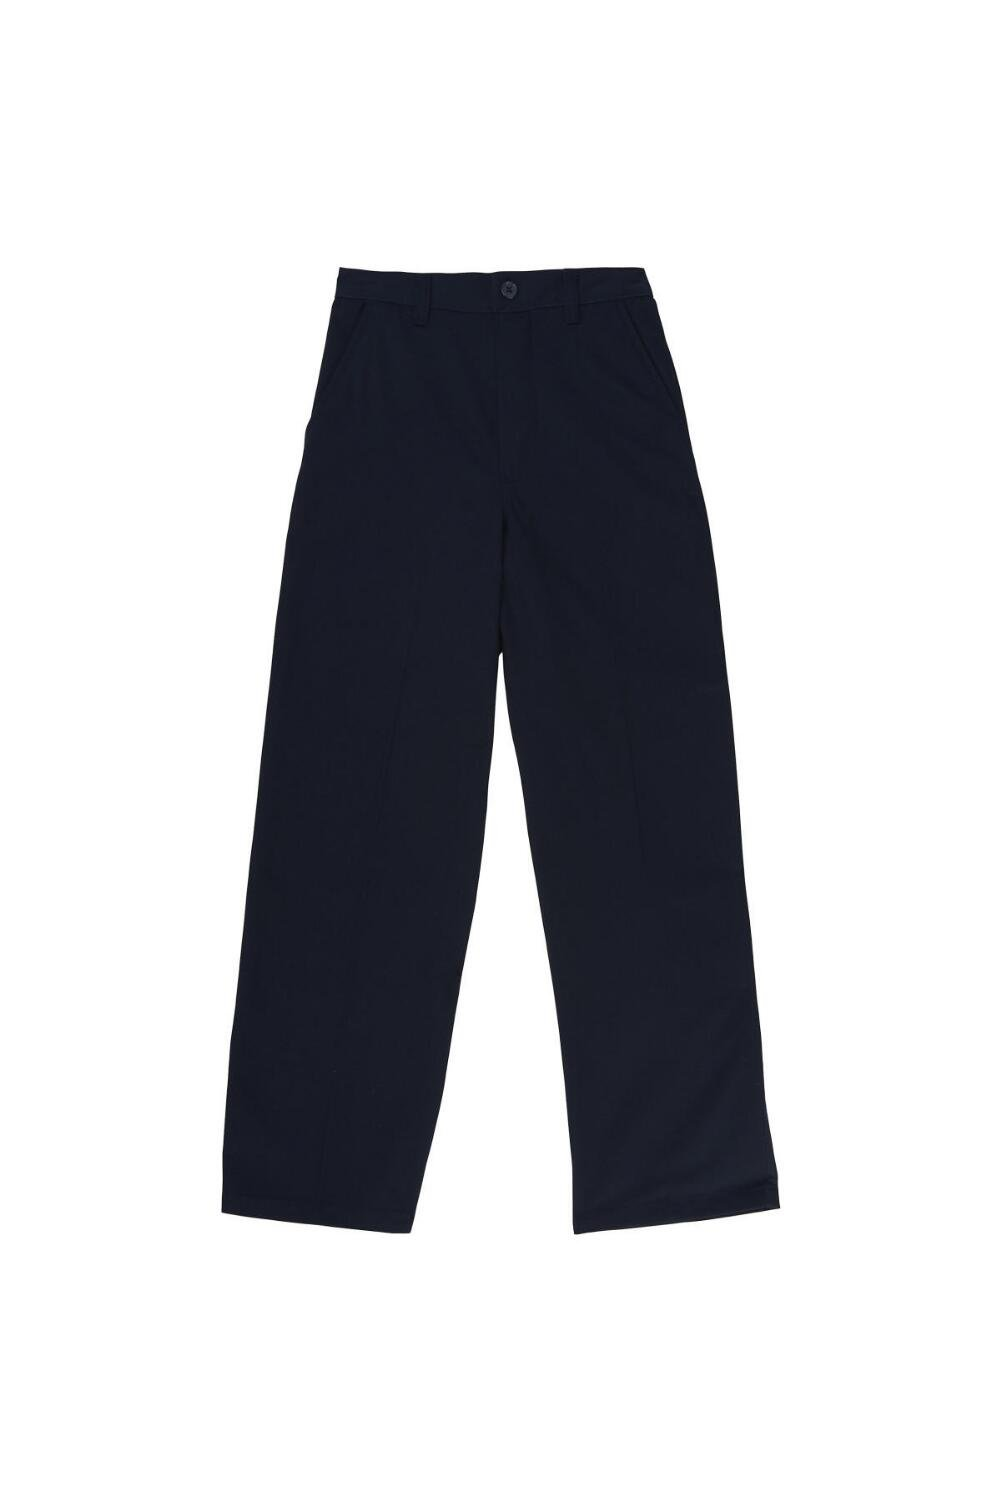 French Toast Little Boys' Pull On Pant, Navy, 5